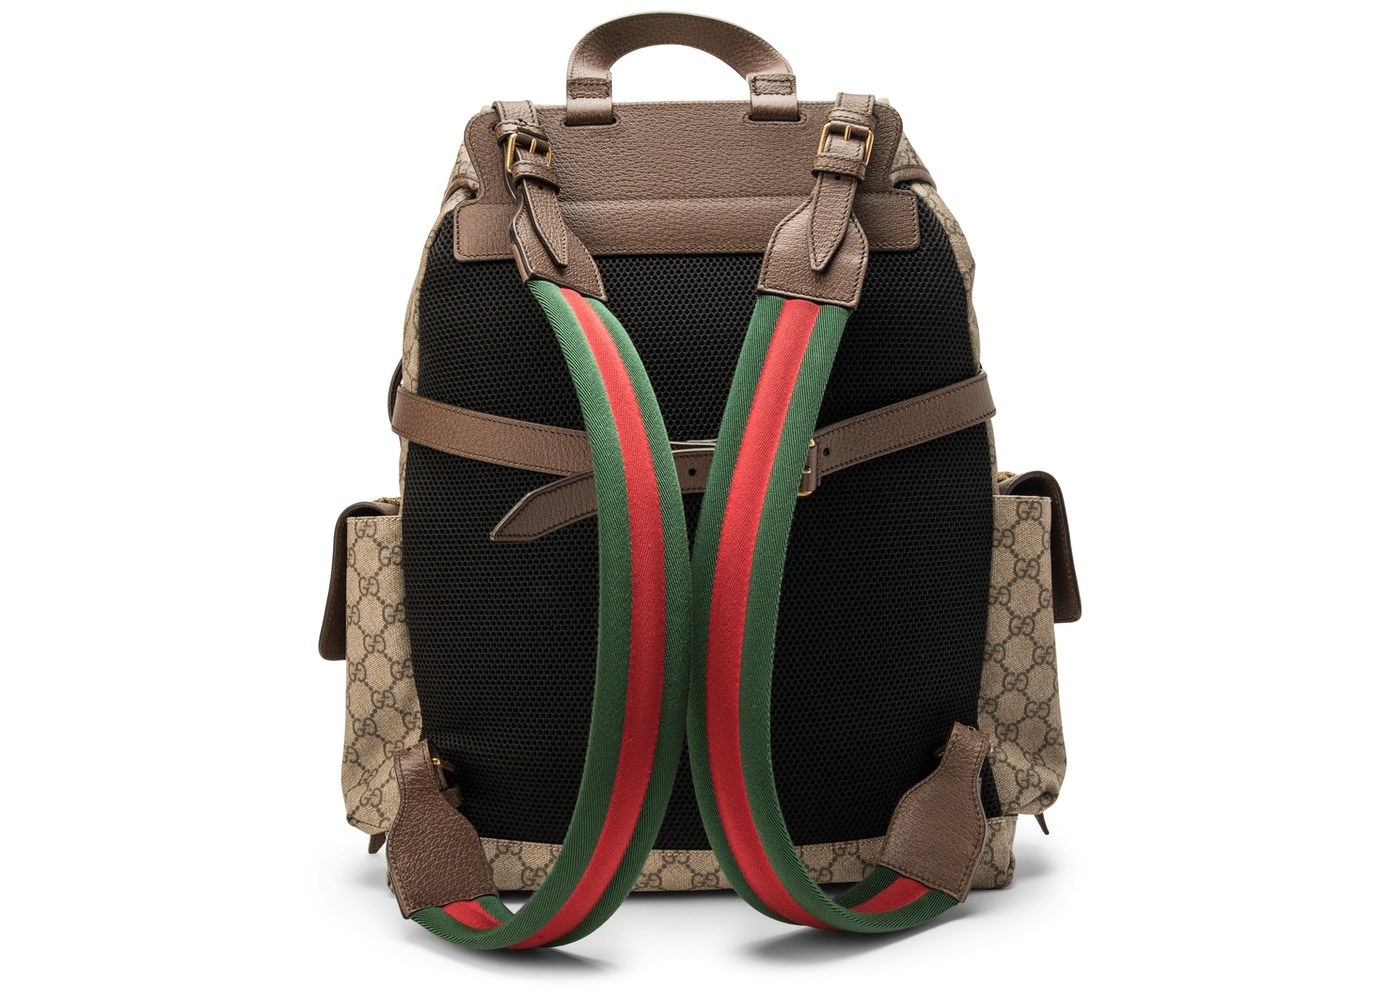 59e41e4ca3bfe Gucci Soft Backpack GG Supreme GG Appliques  Donald Duck at the Front  Tan Brown